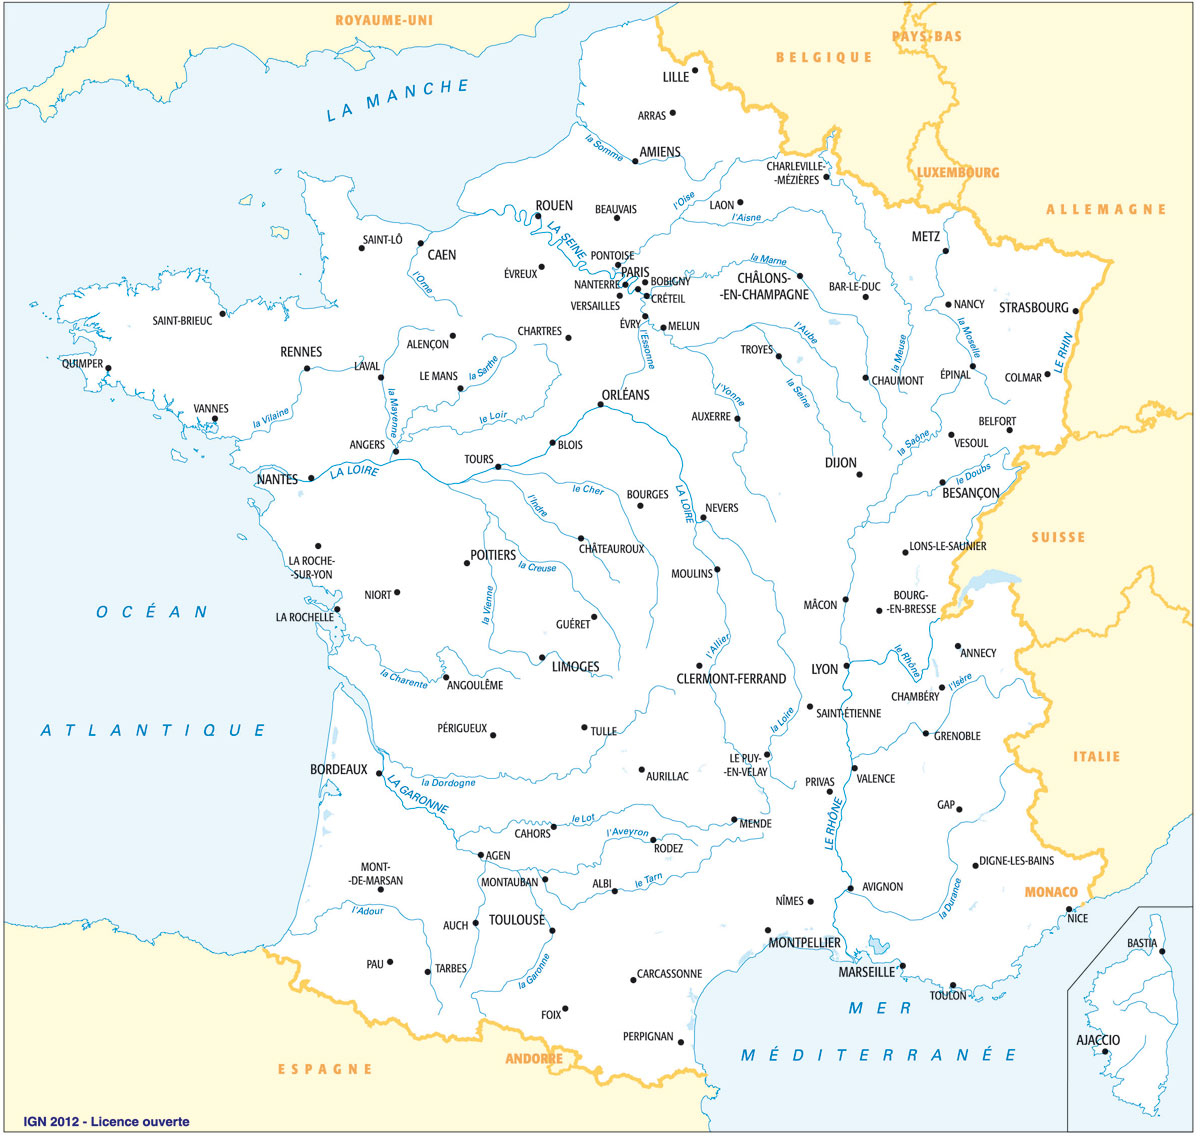 Fonds De Cartes | Éducation avec Carte De France Avec Departement A Imprimer